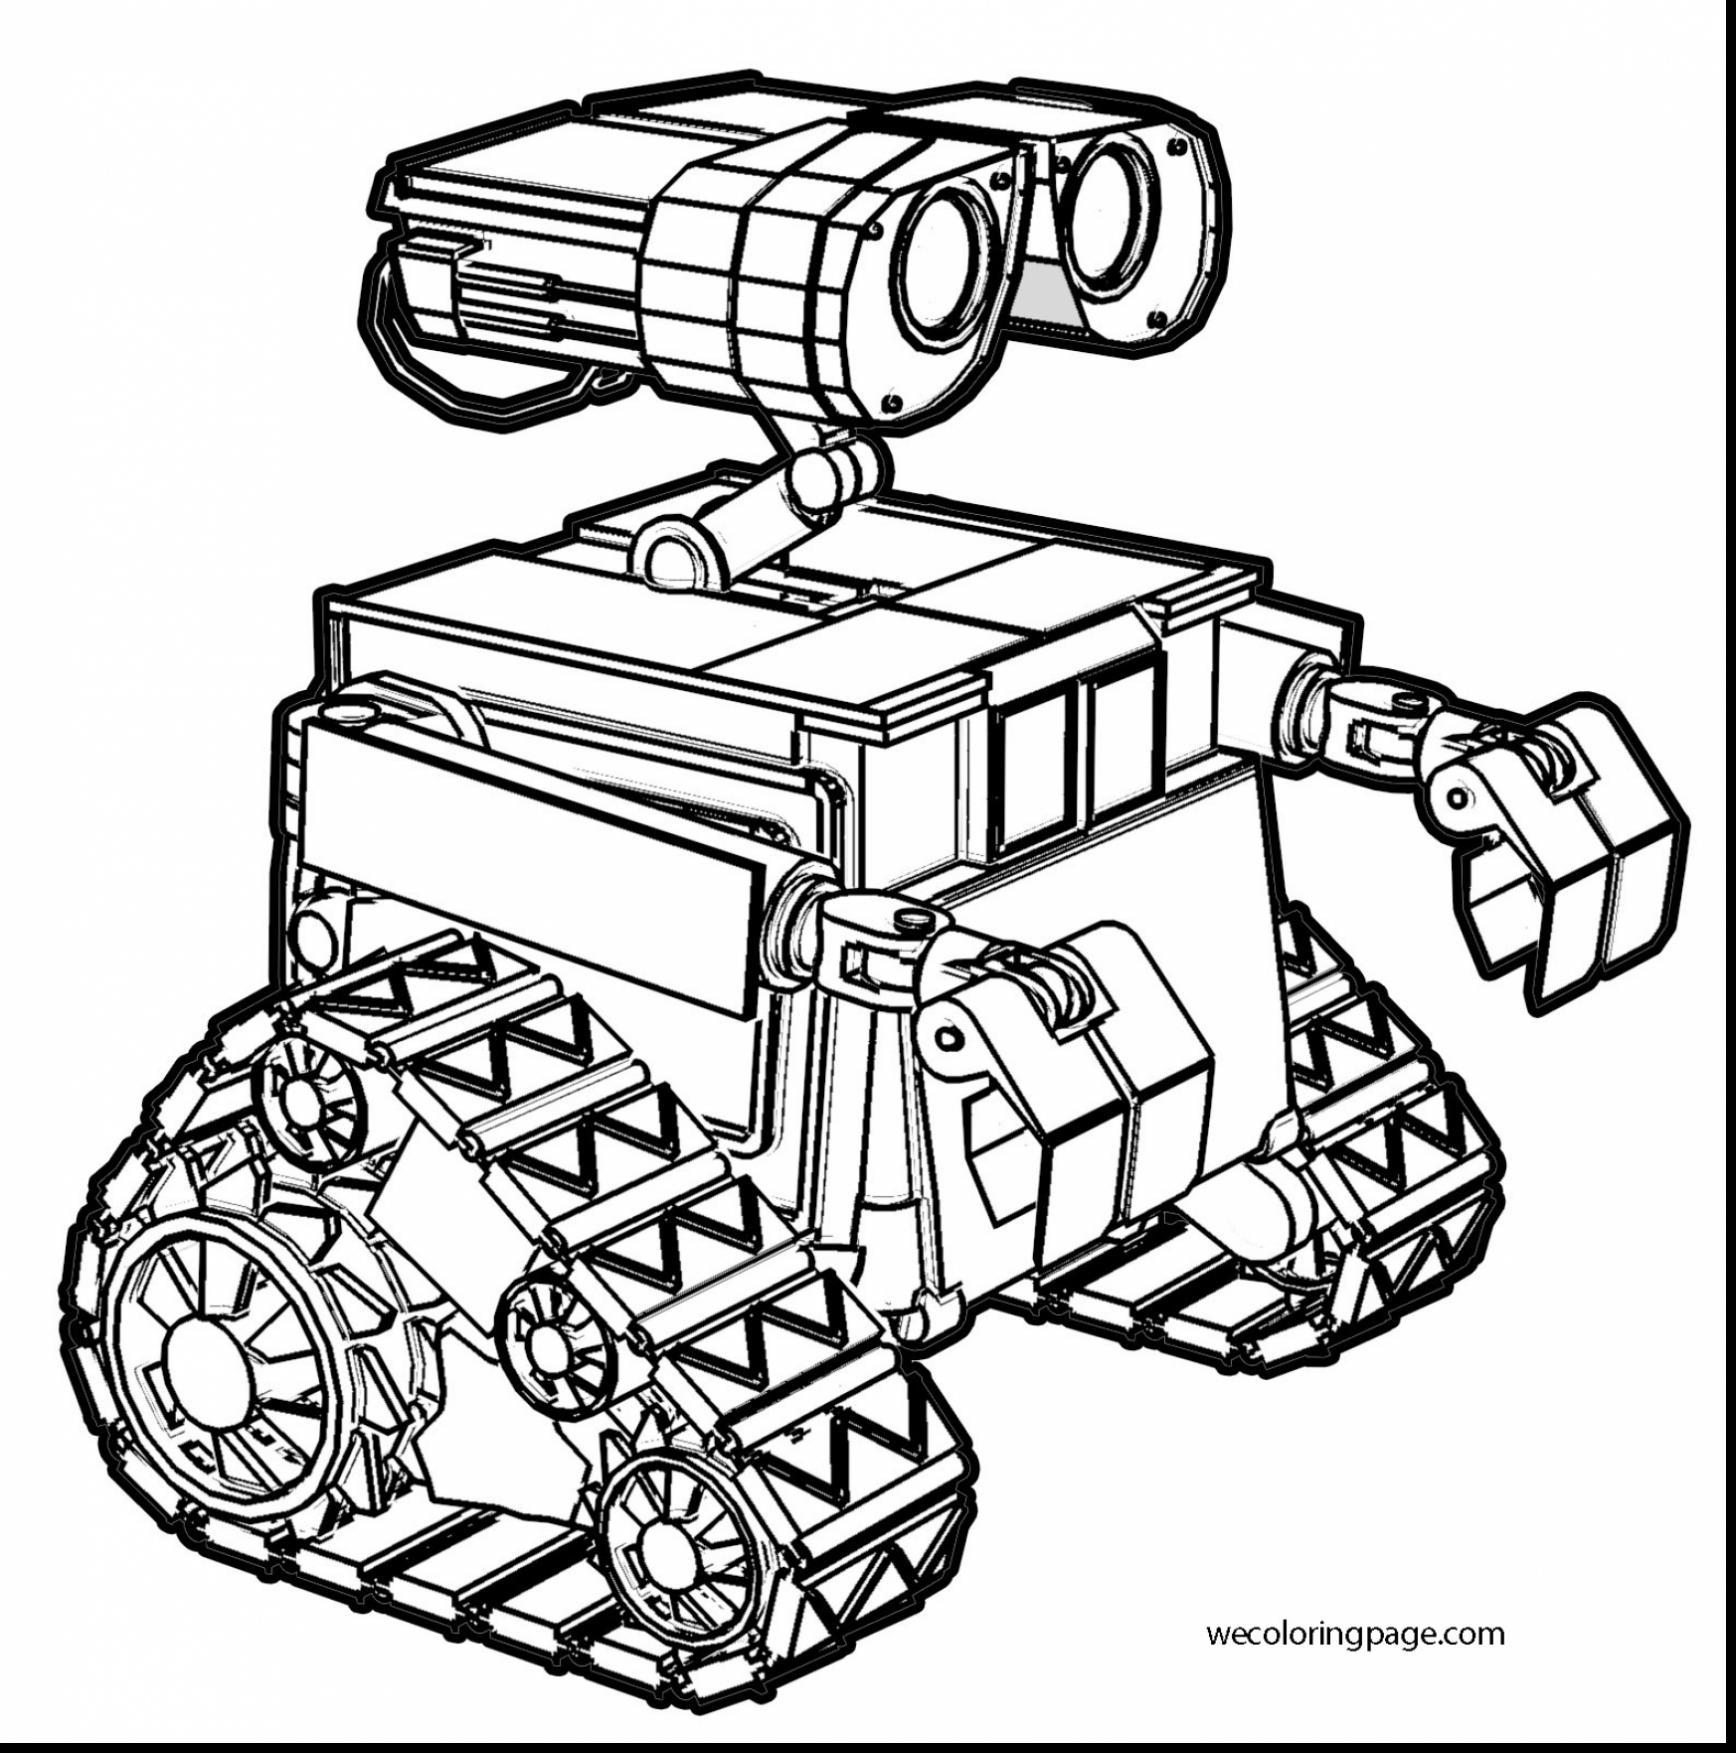 Cute Robot Coloring Pages At Getdrawings